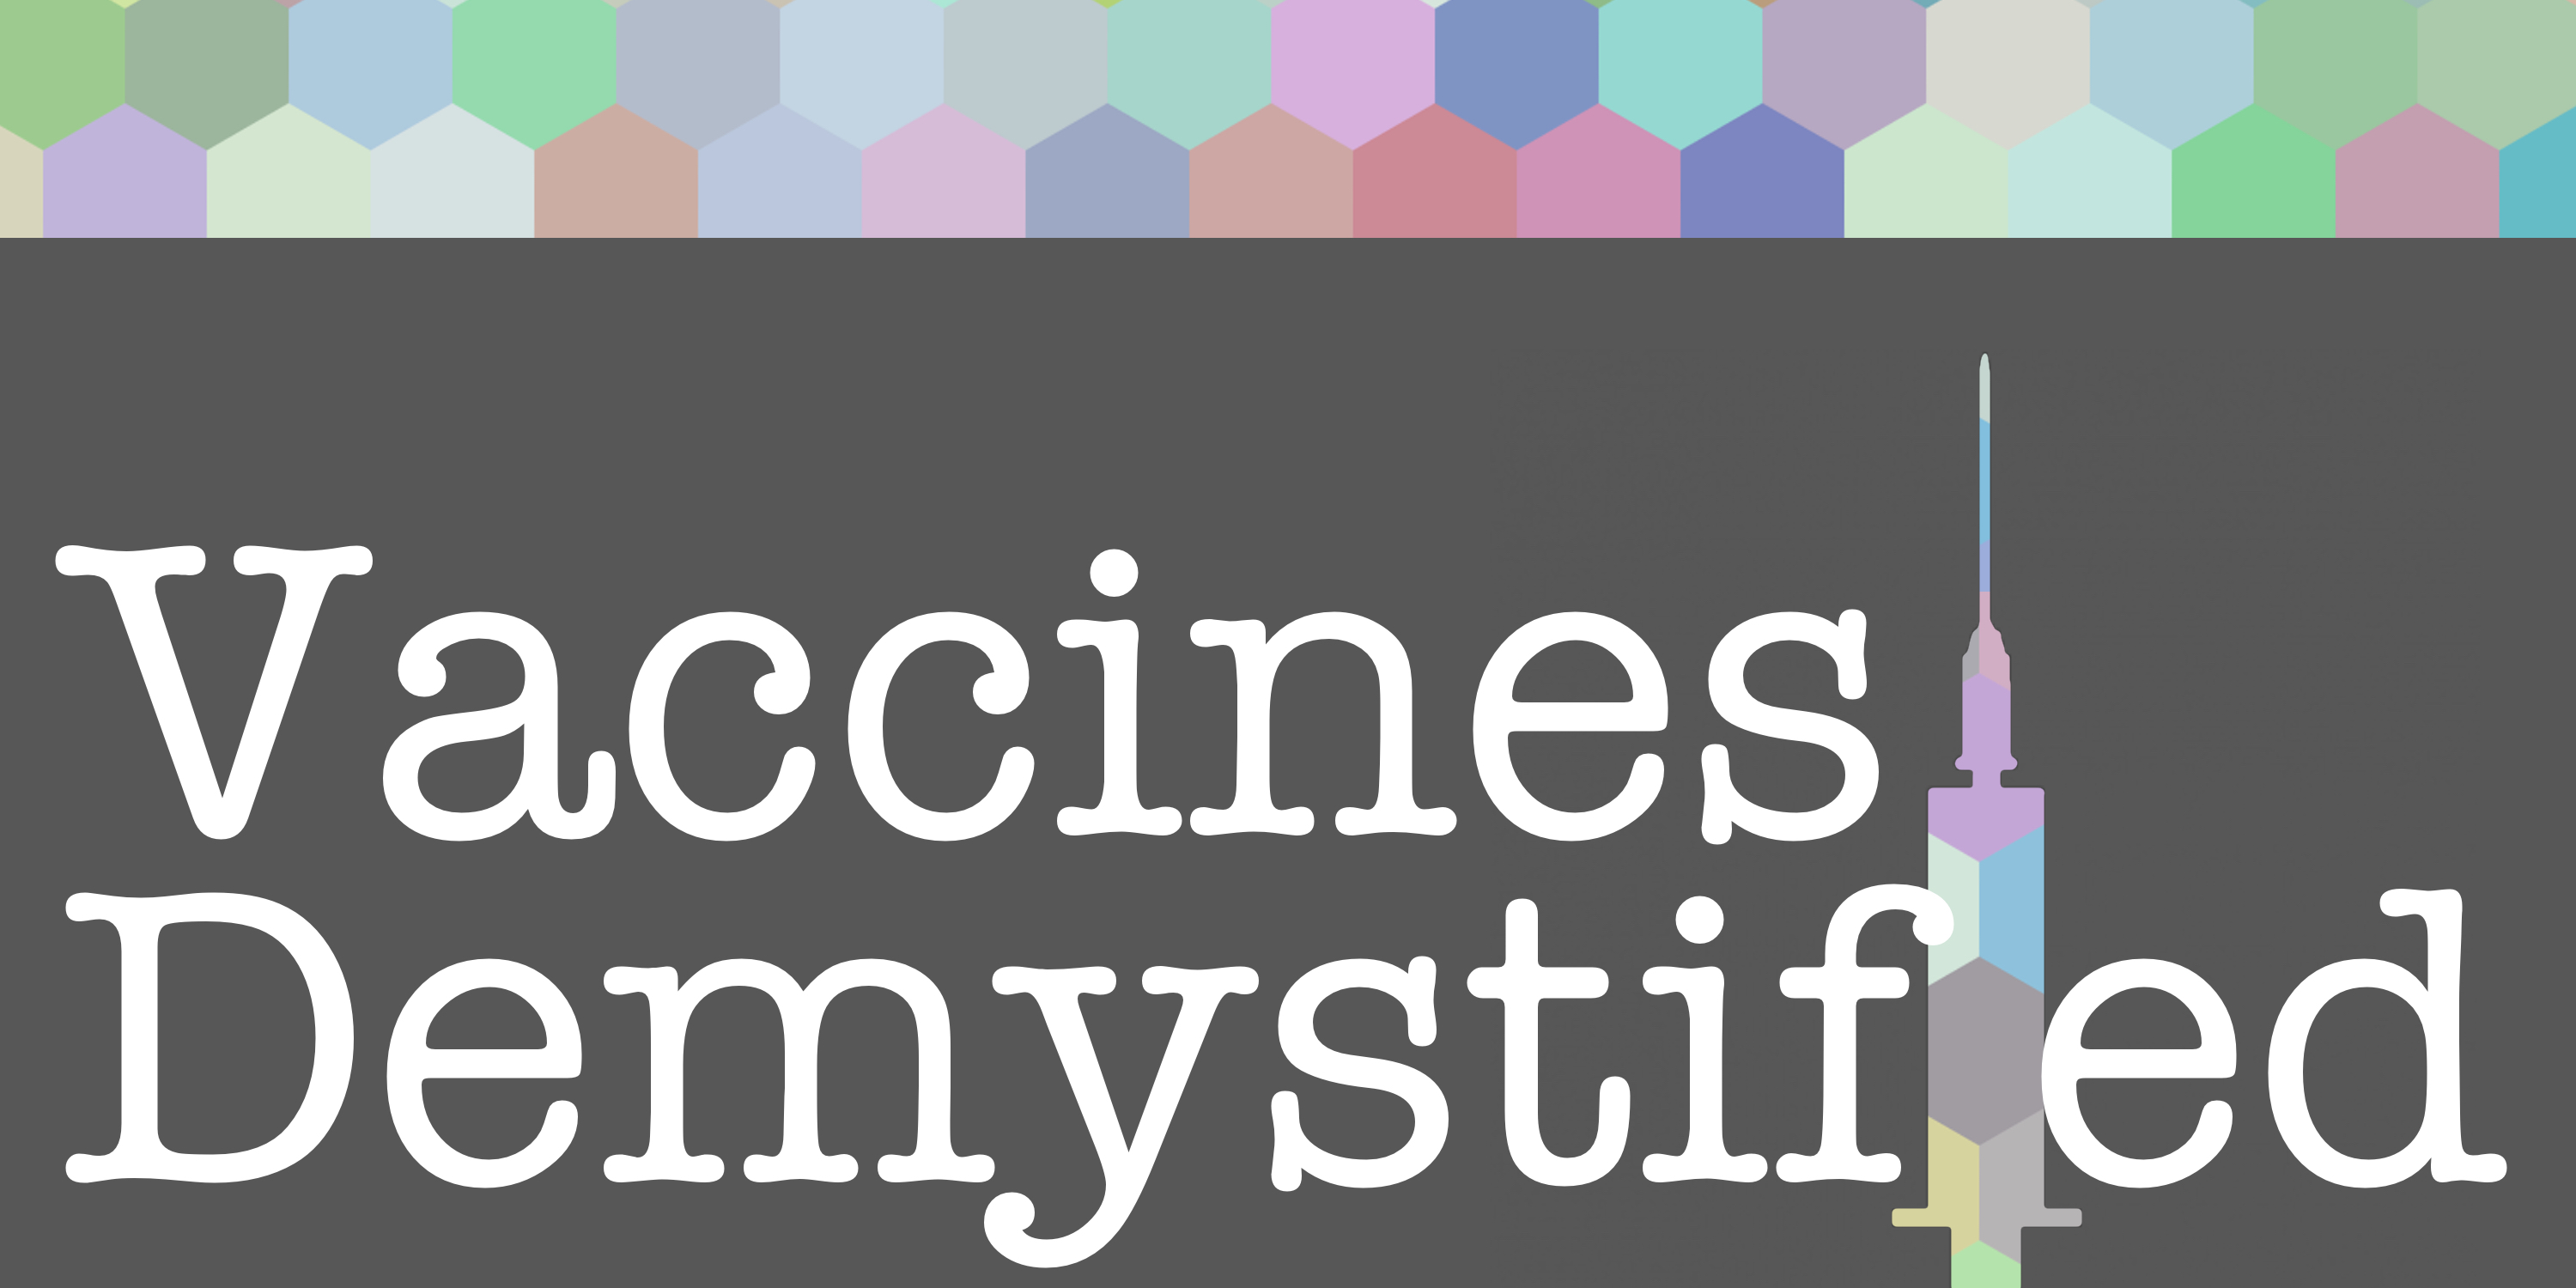 Vaccines Demystified! Learn the TRUTH about vaccines from a source you can trust.